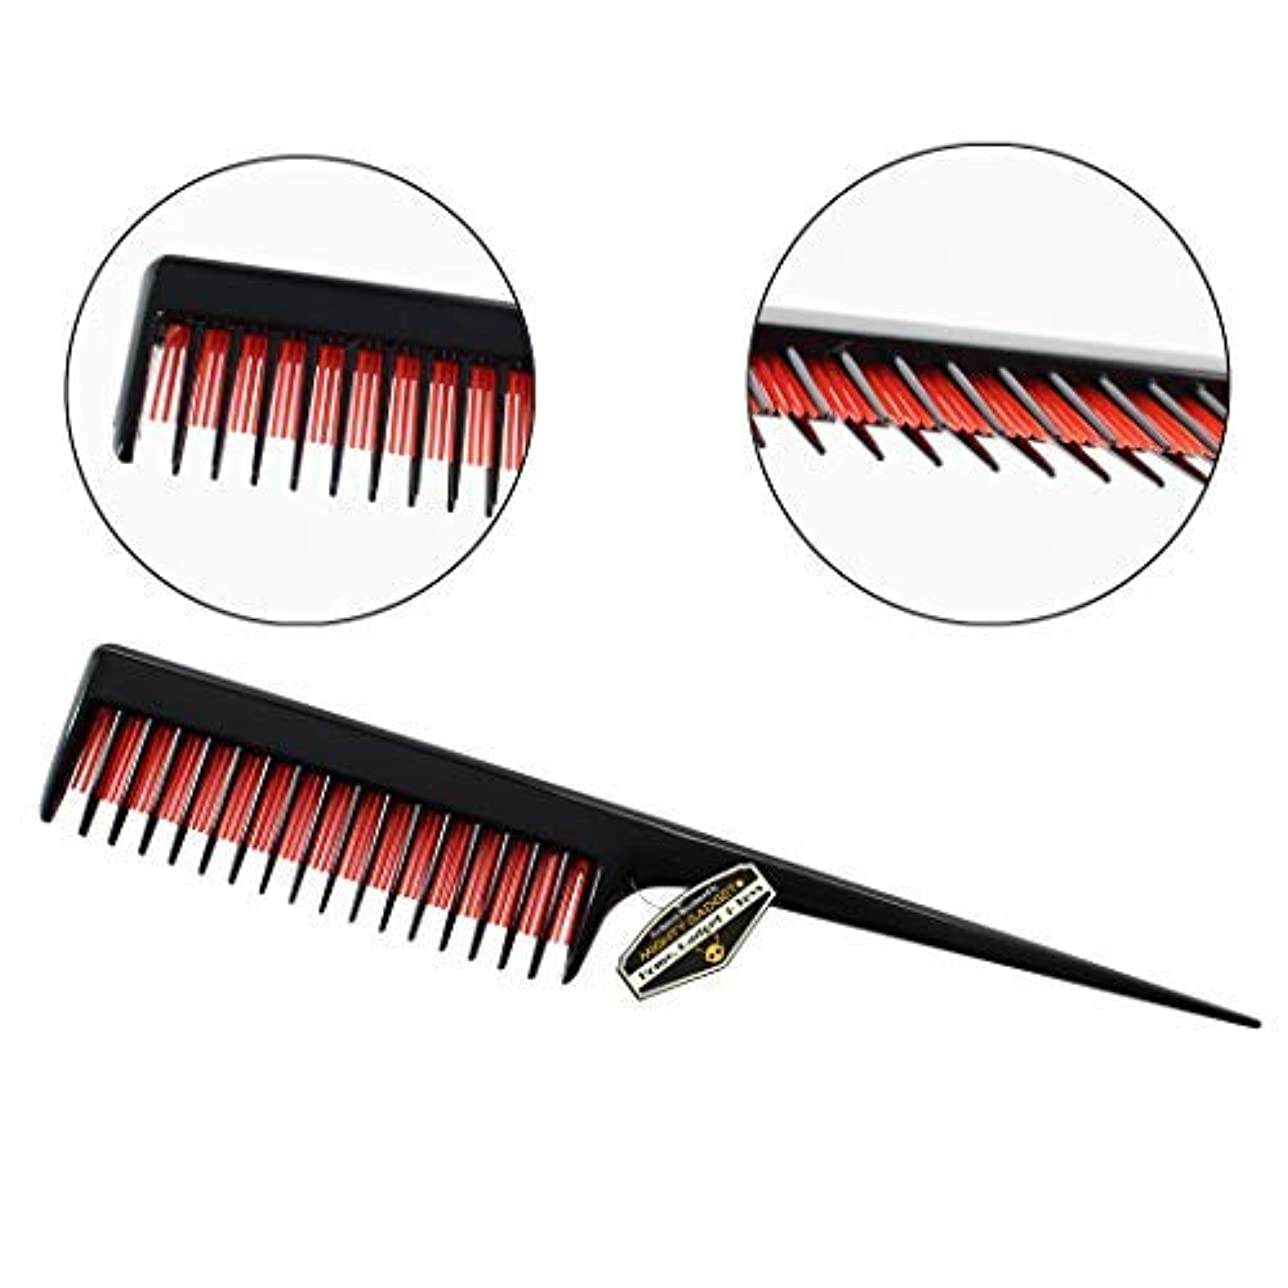 3 Pack of Mighty Gadget 8 inch Teasing Comb - Rat Tail Comb for Back Combing, Root Teasing, Adding Volume, Evening Styling for Thin, Fine and Normal Hair Types [並行輸入品]